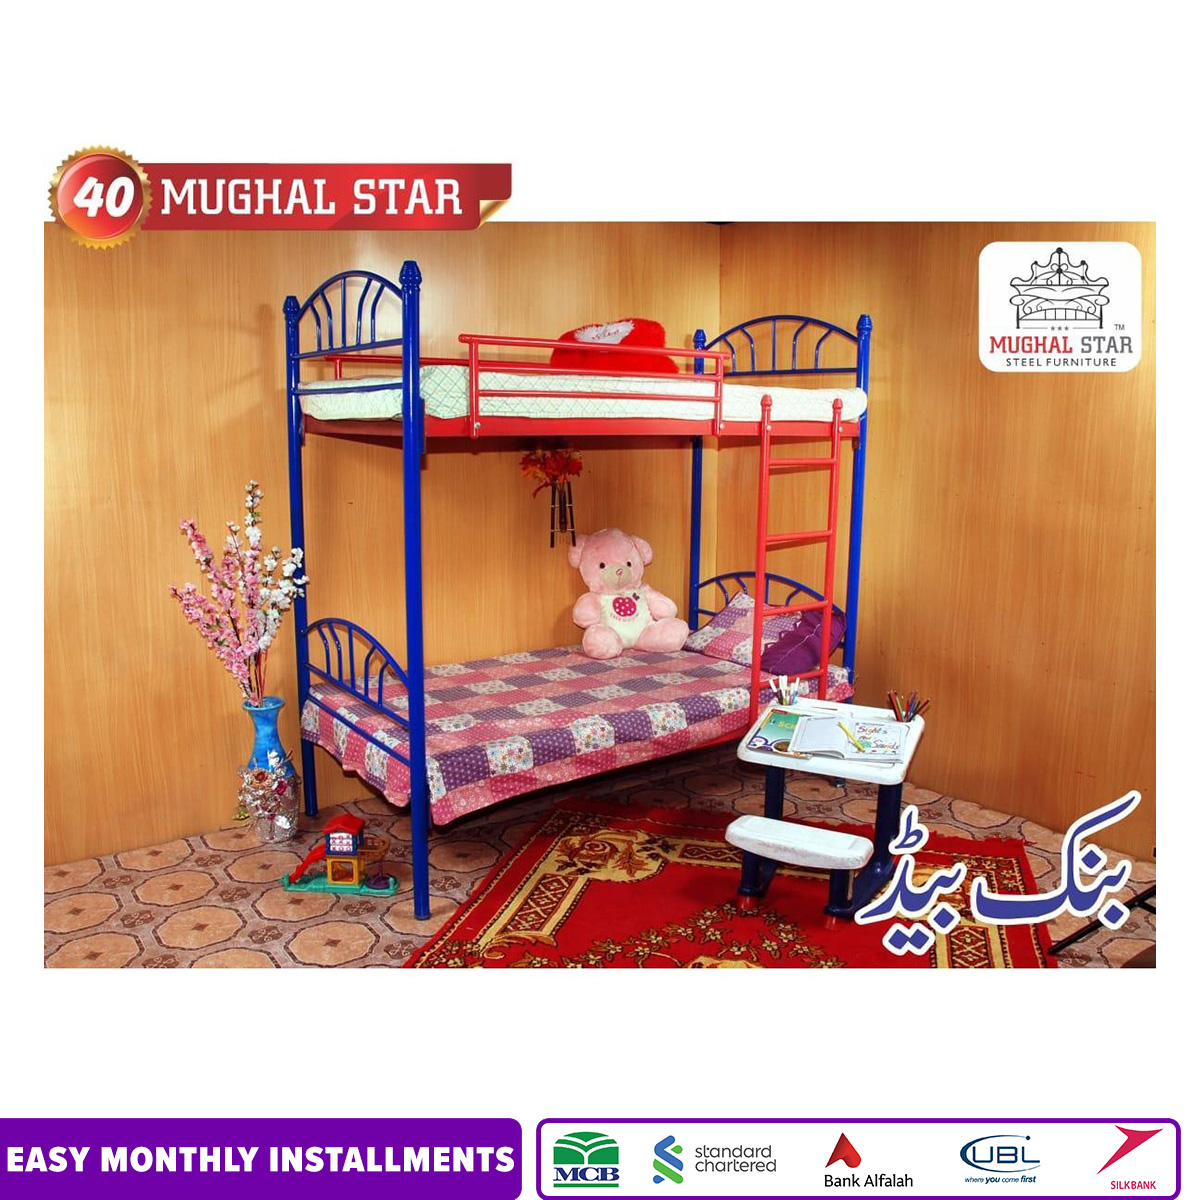 Bunk Bed, Iron Bed , Mughal Star Steel Furniture